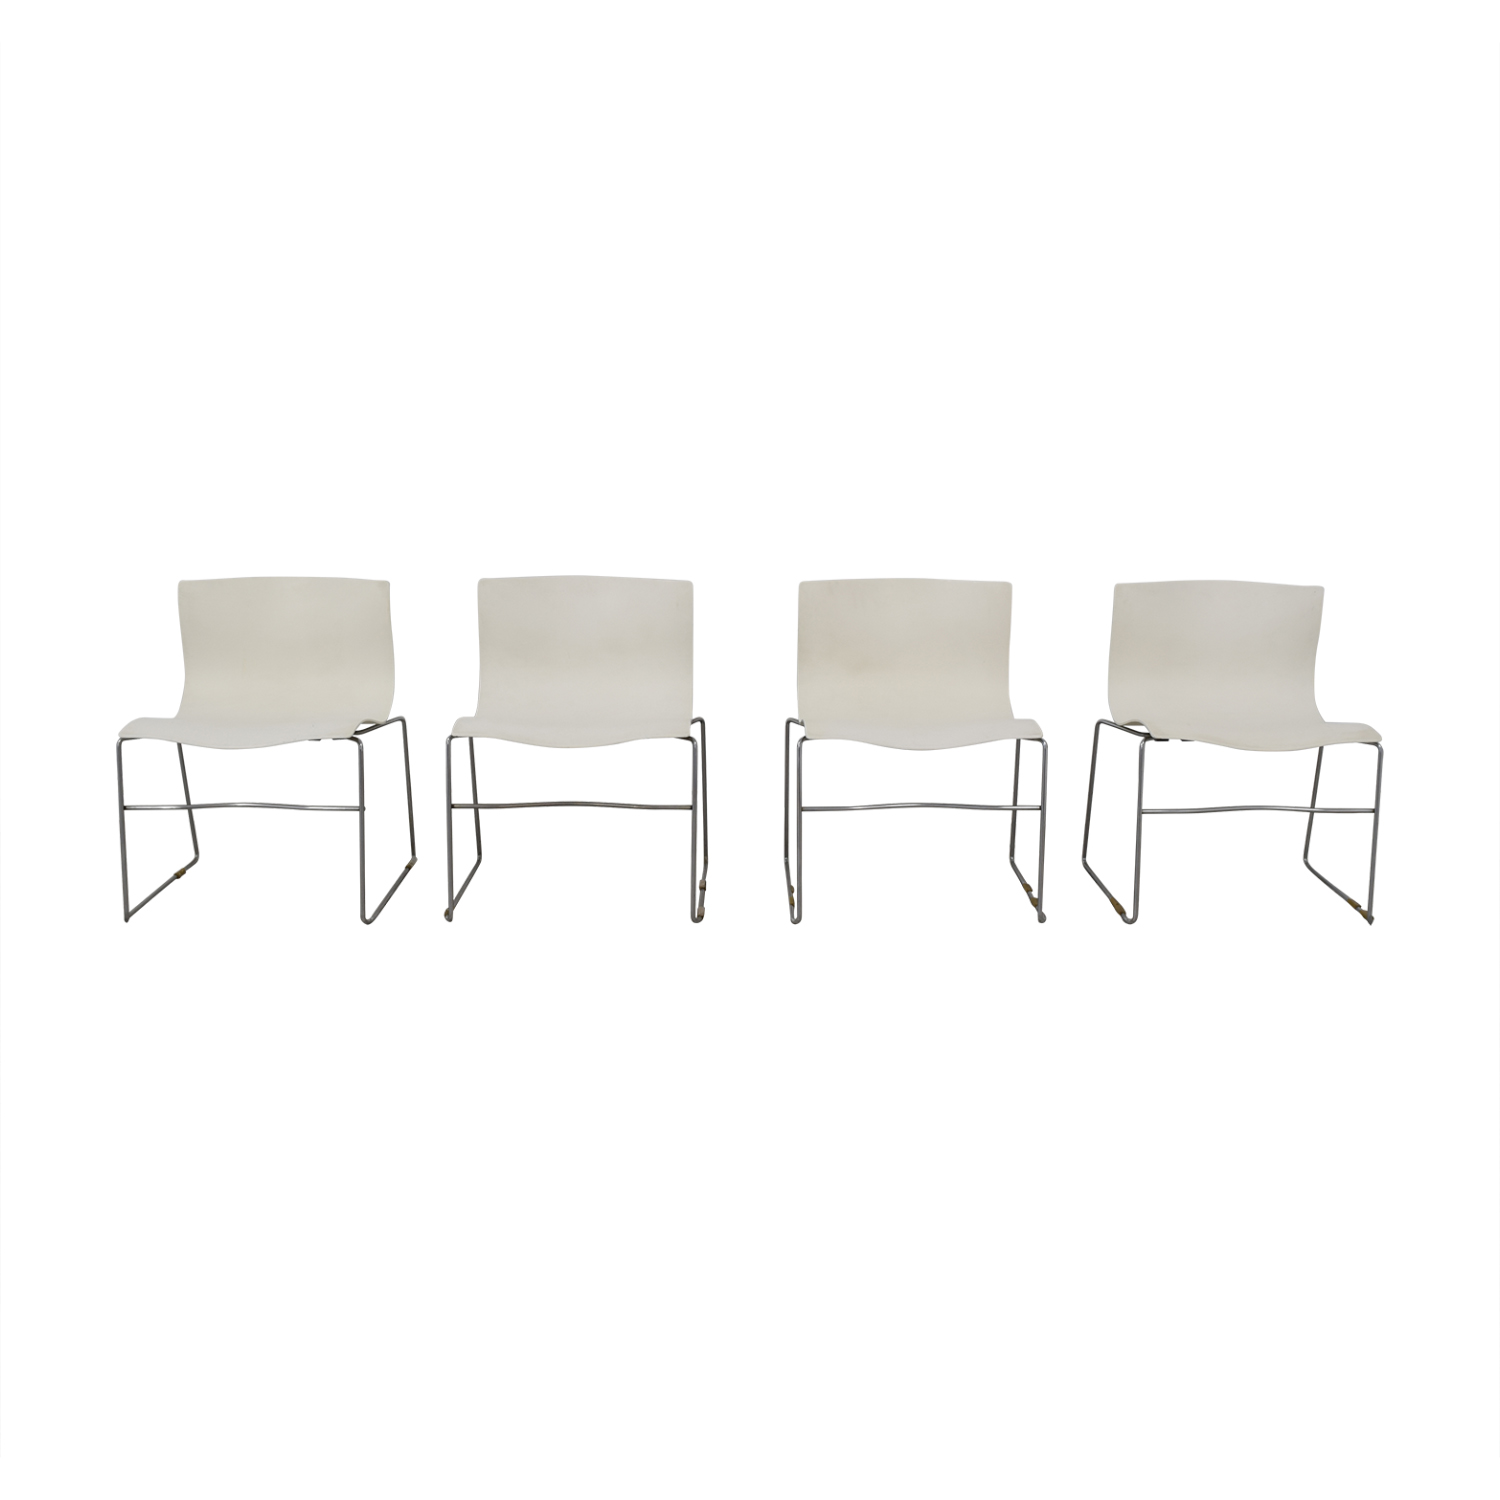 Knoll Knoll Vignelli Designs 1983 White Handkerchief Chairs second hand